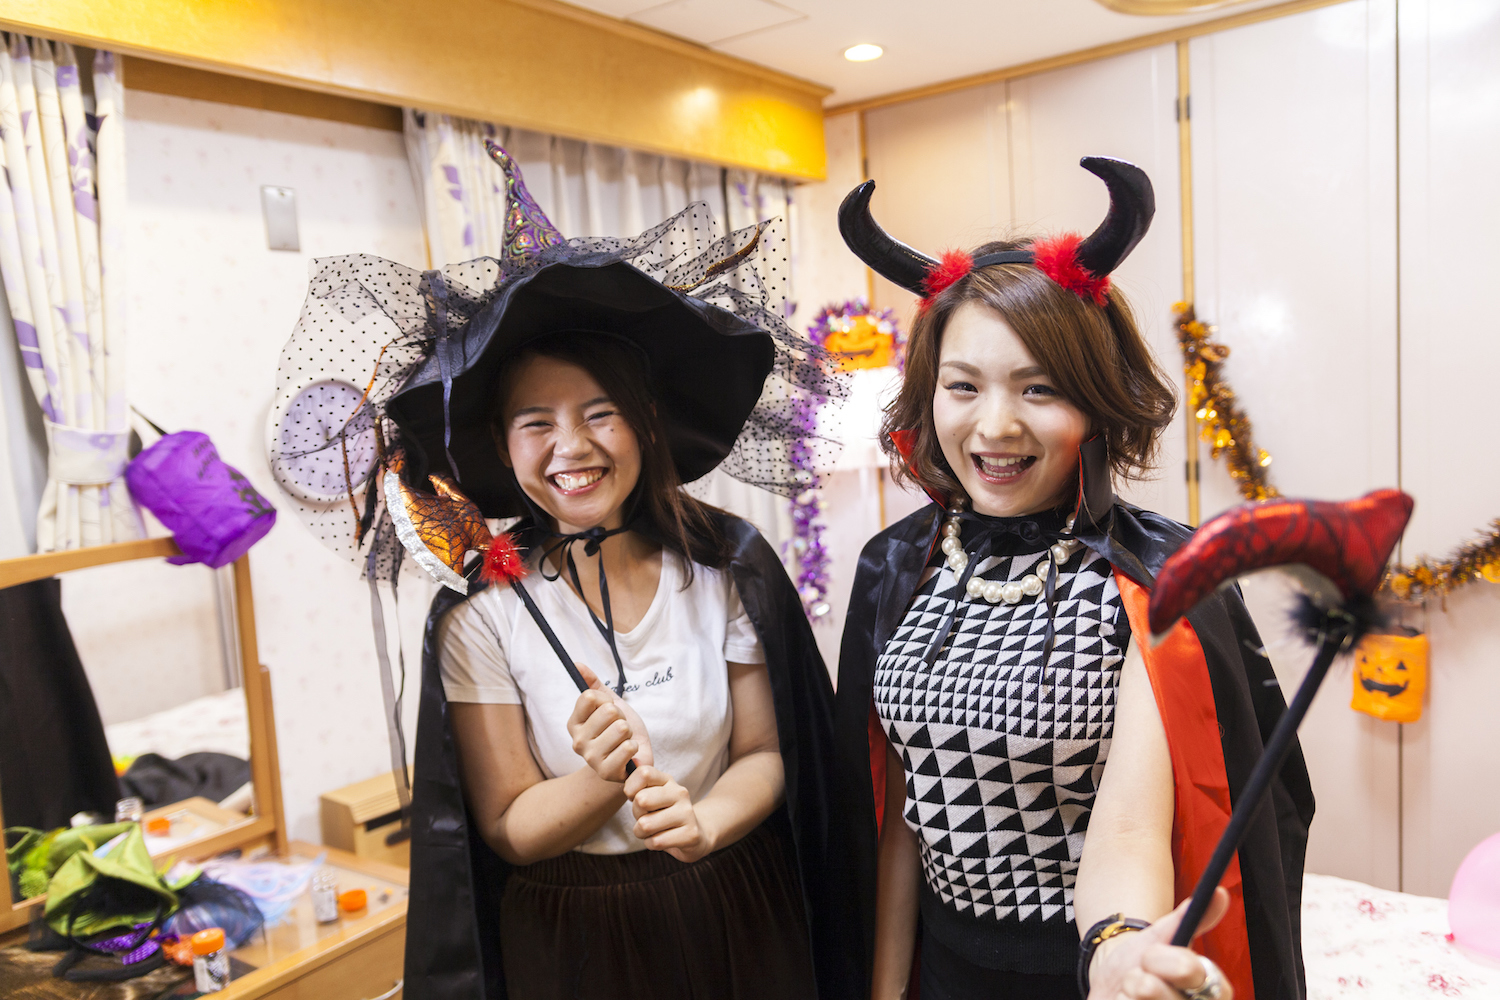 Halloween at home a hit in Japan